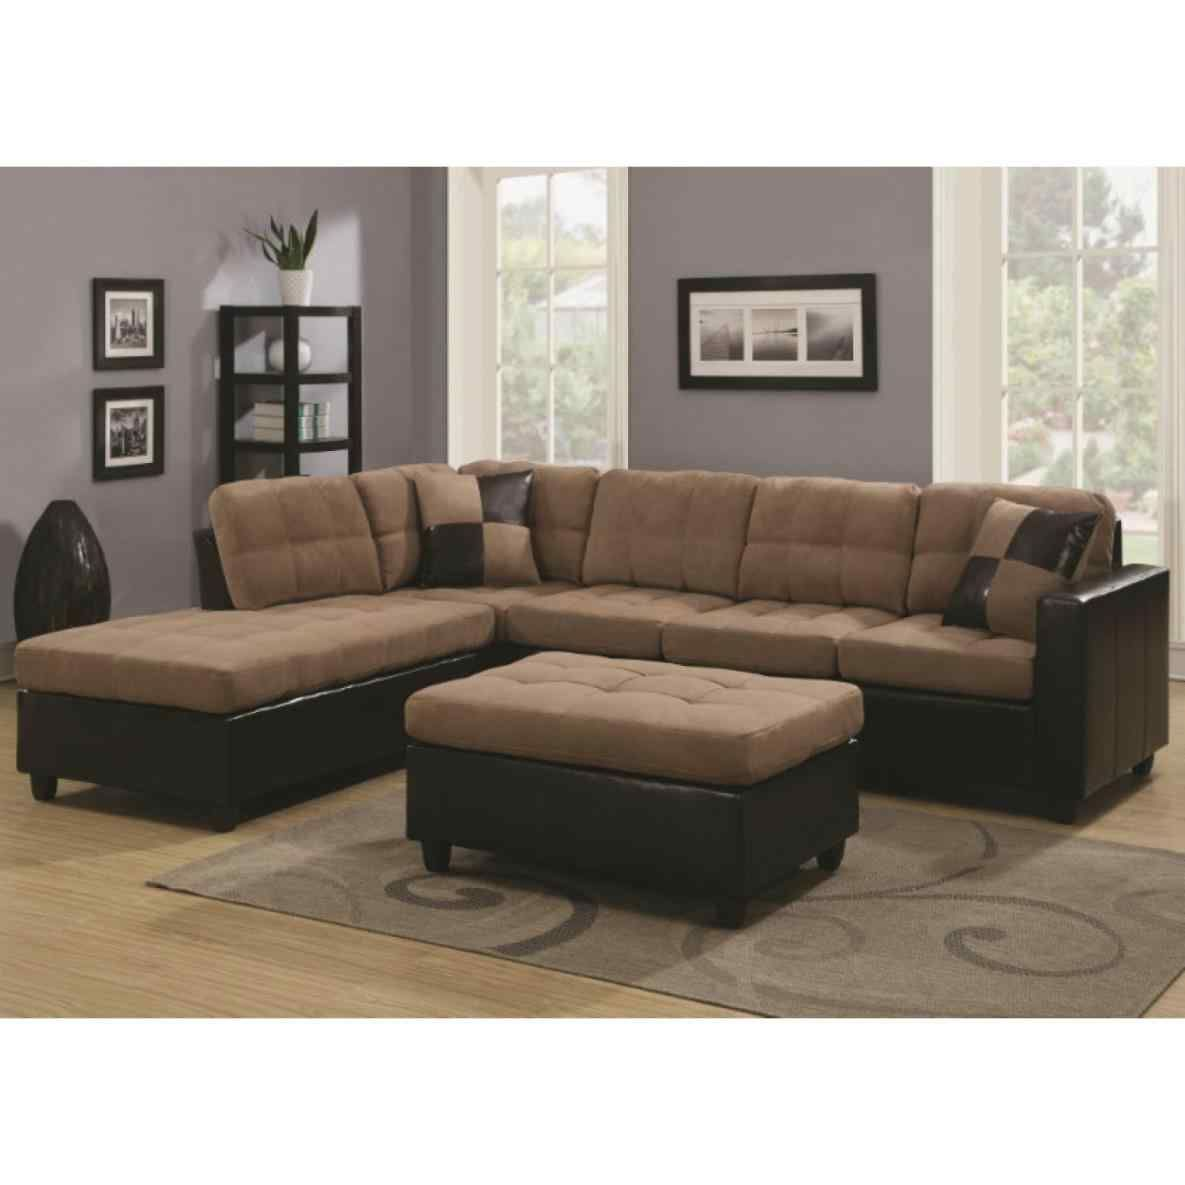 for nice cheap sectional sofas sale l shaped sleeper sofa u interior design l - Cheap Sofas For Sale